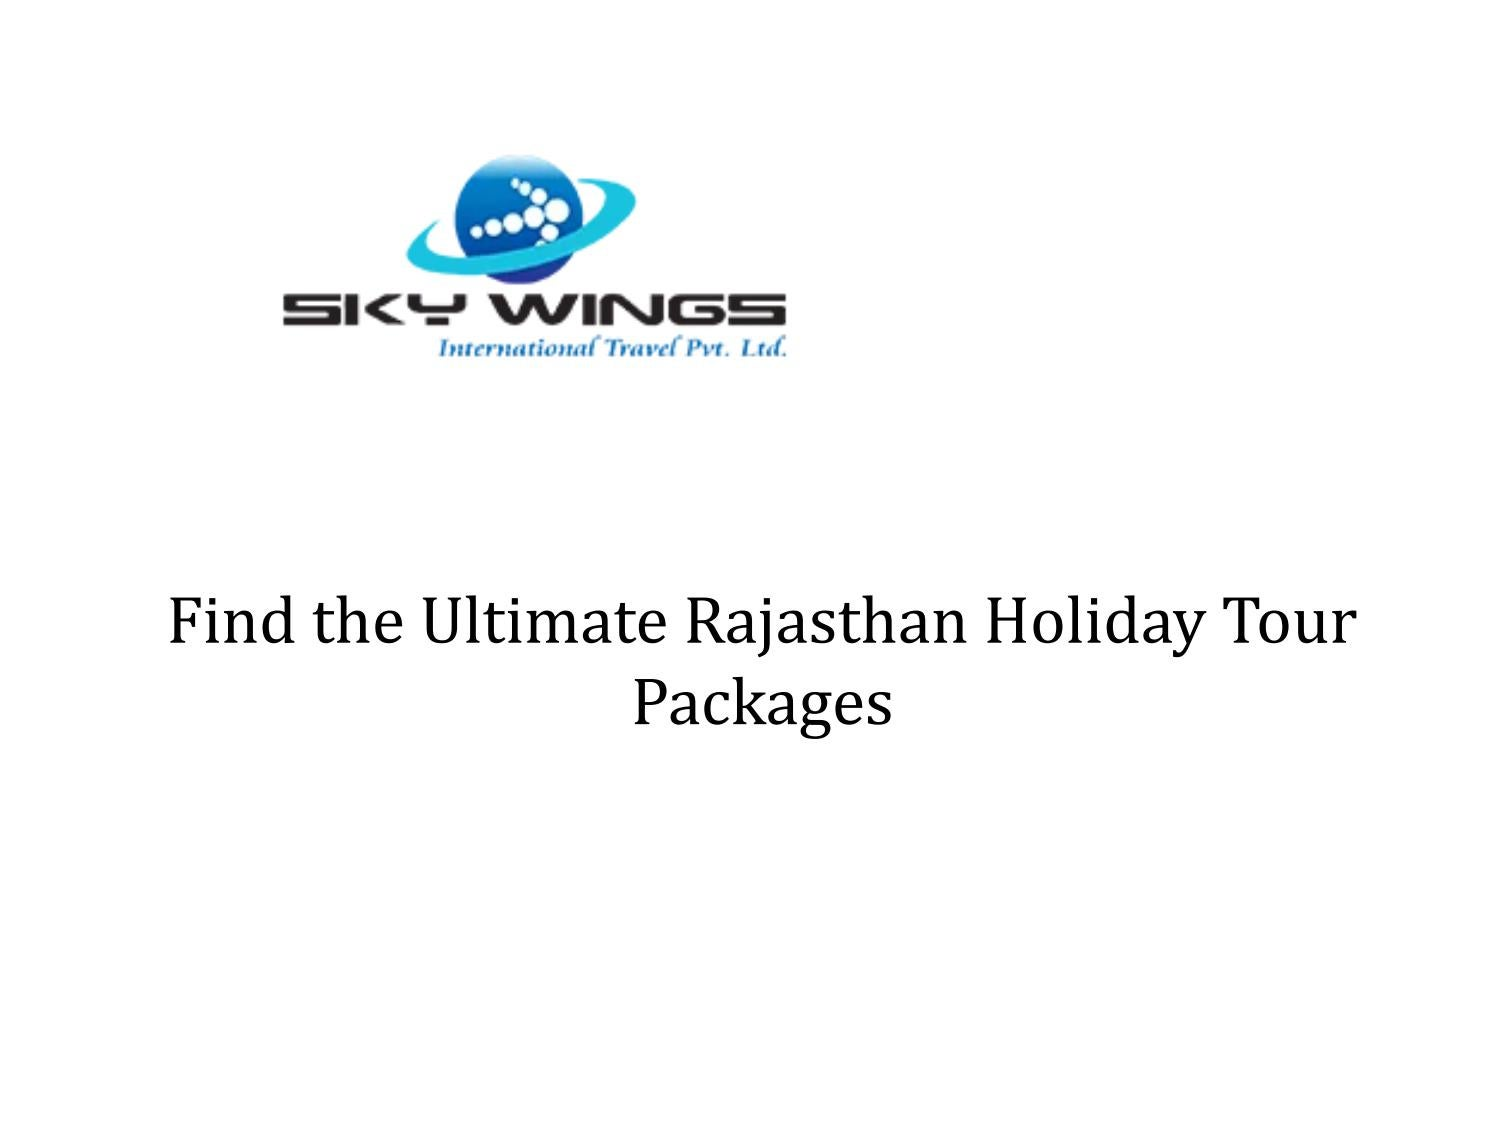 Find the Ultimate Rajasthan Holiday Tour Packages